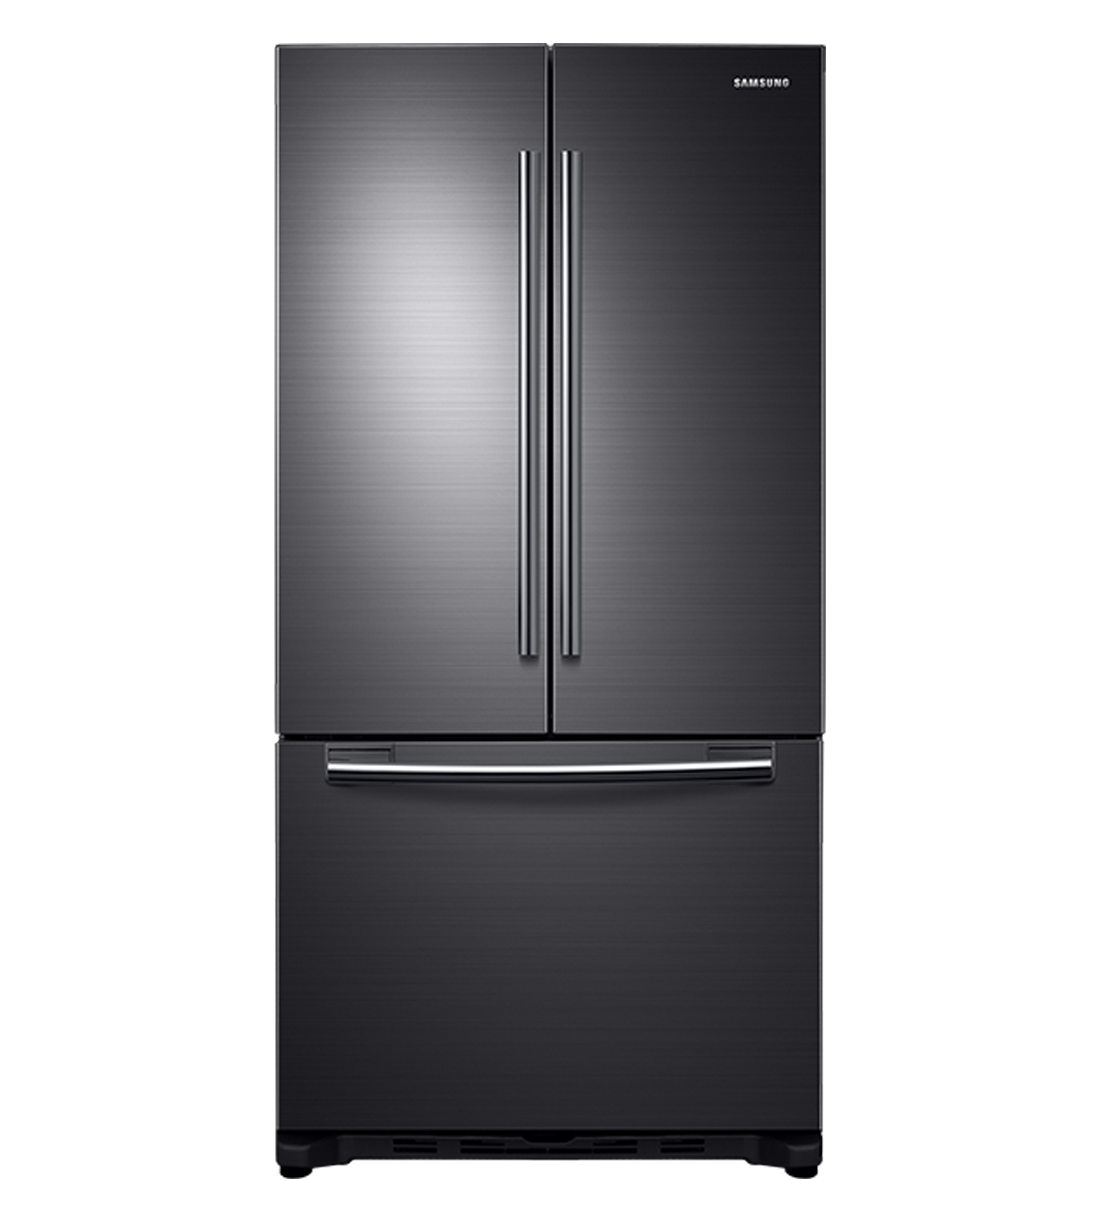 Samsung Refrigerator 33 RF18HFENBS showcased by Corbeil Electro Store